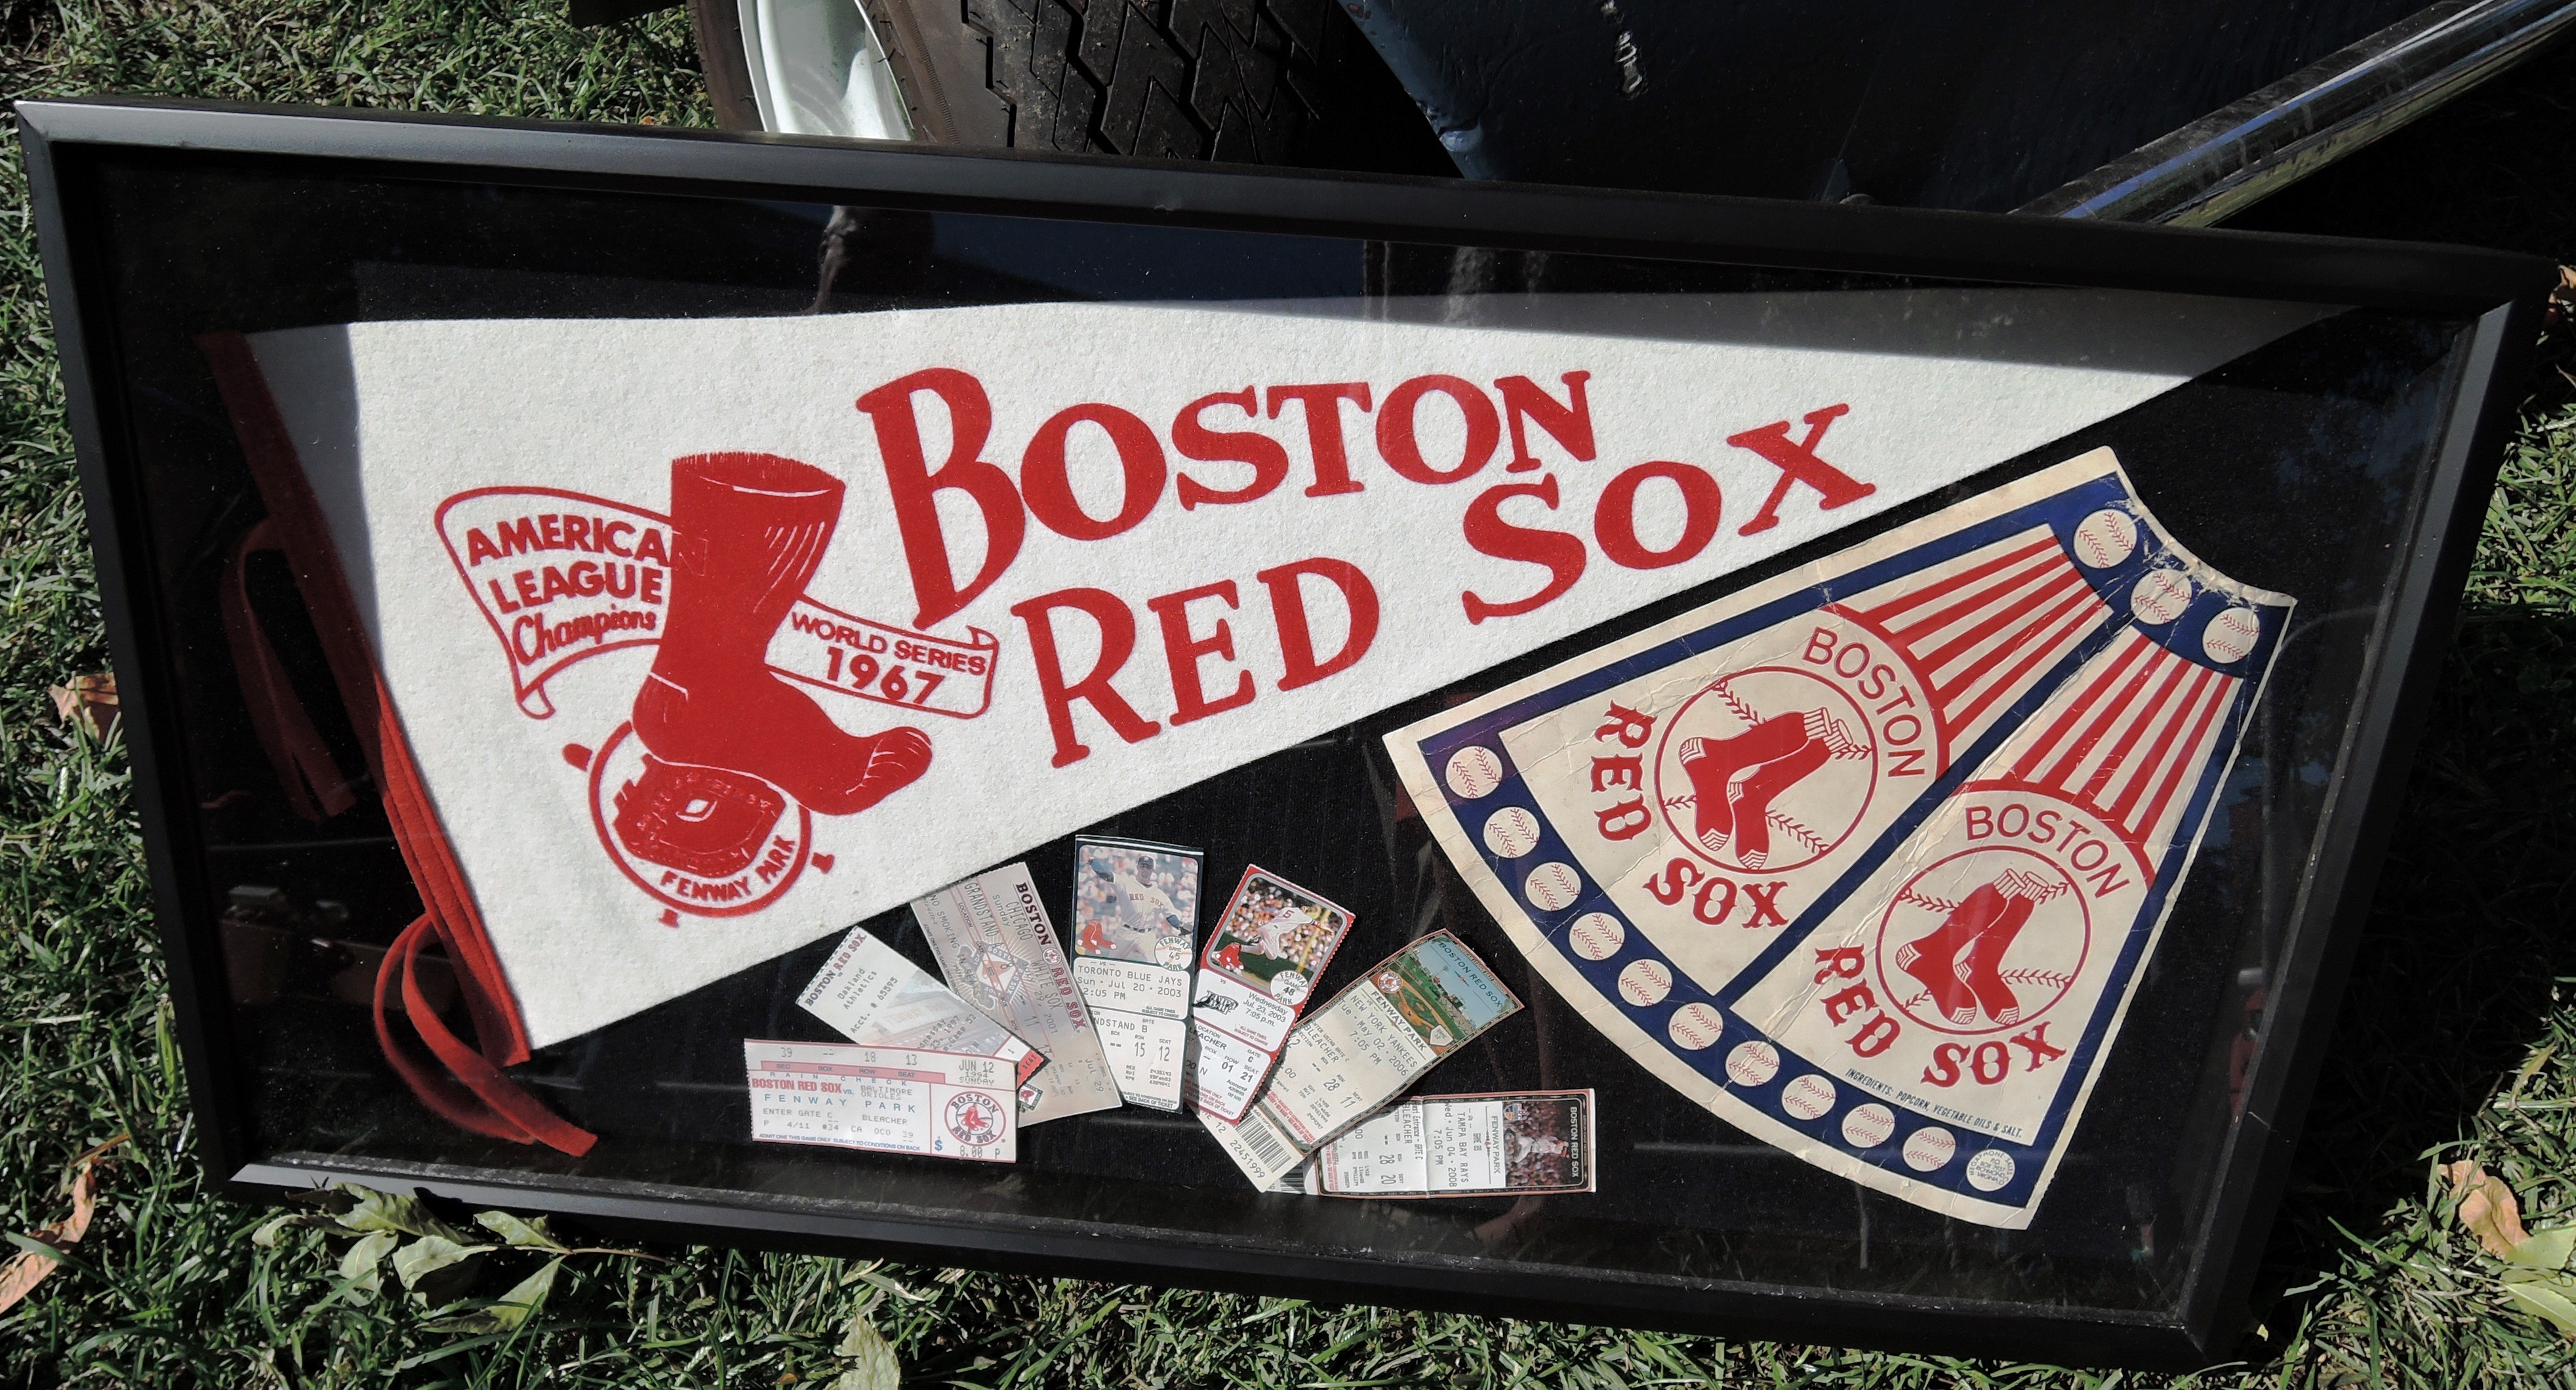 Boston Red Sox memorandum - The Boston Cup on Boston Common